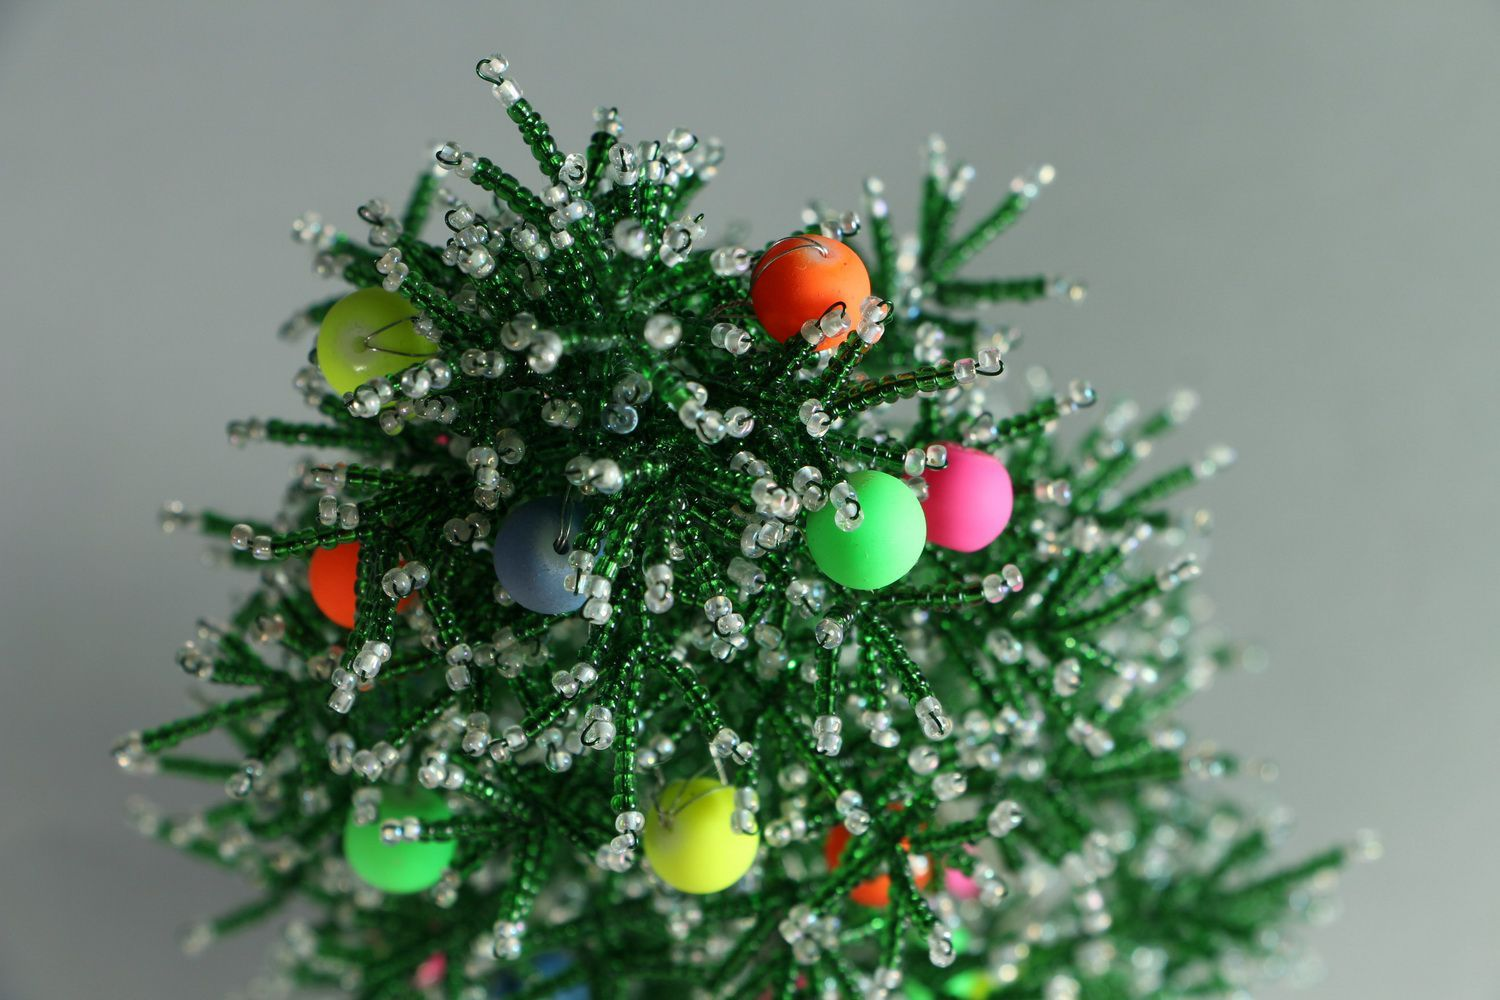 Decorative Christmas tree for New Year photo 2